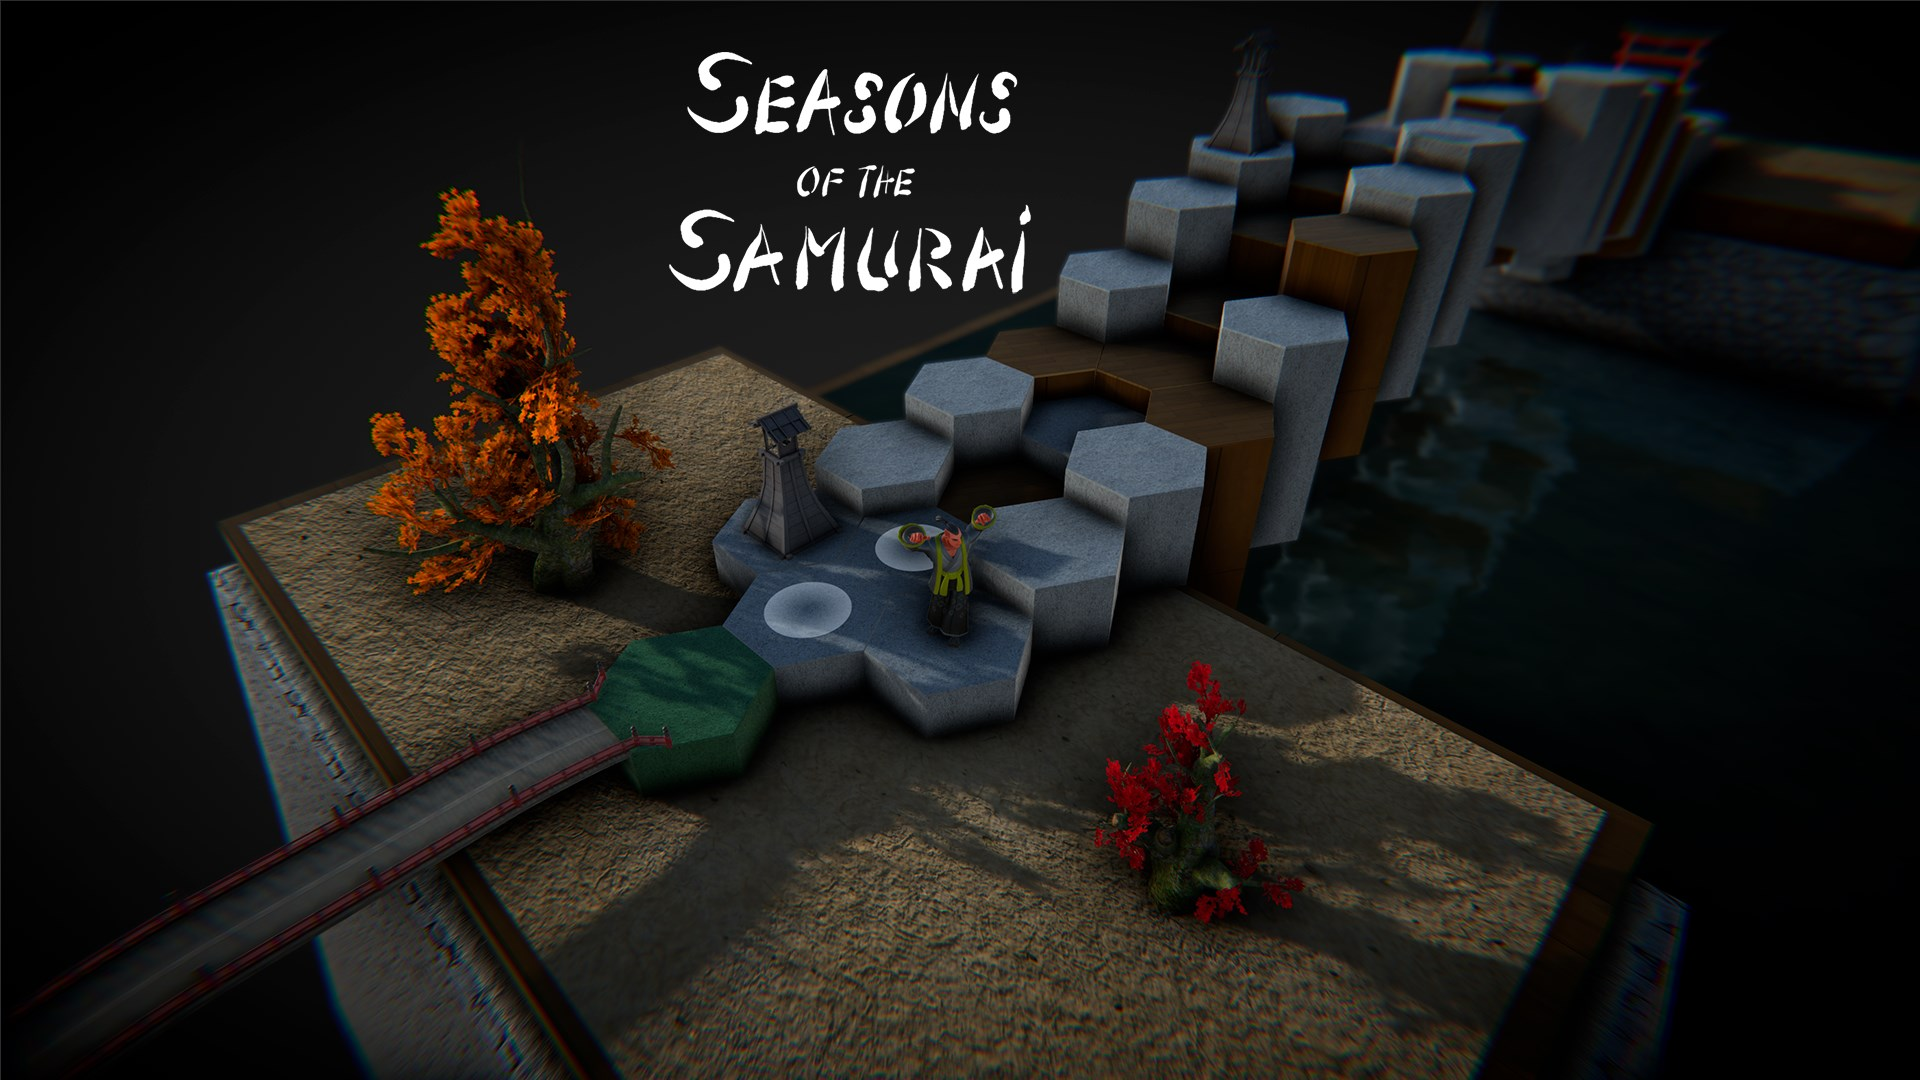 Seasons of the Samurai - Demo